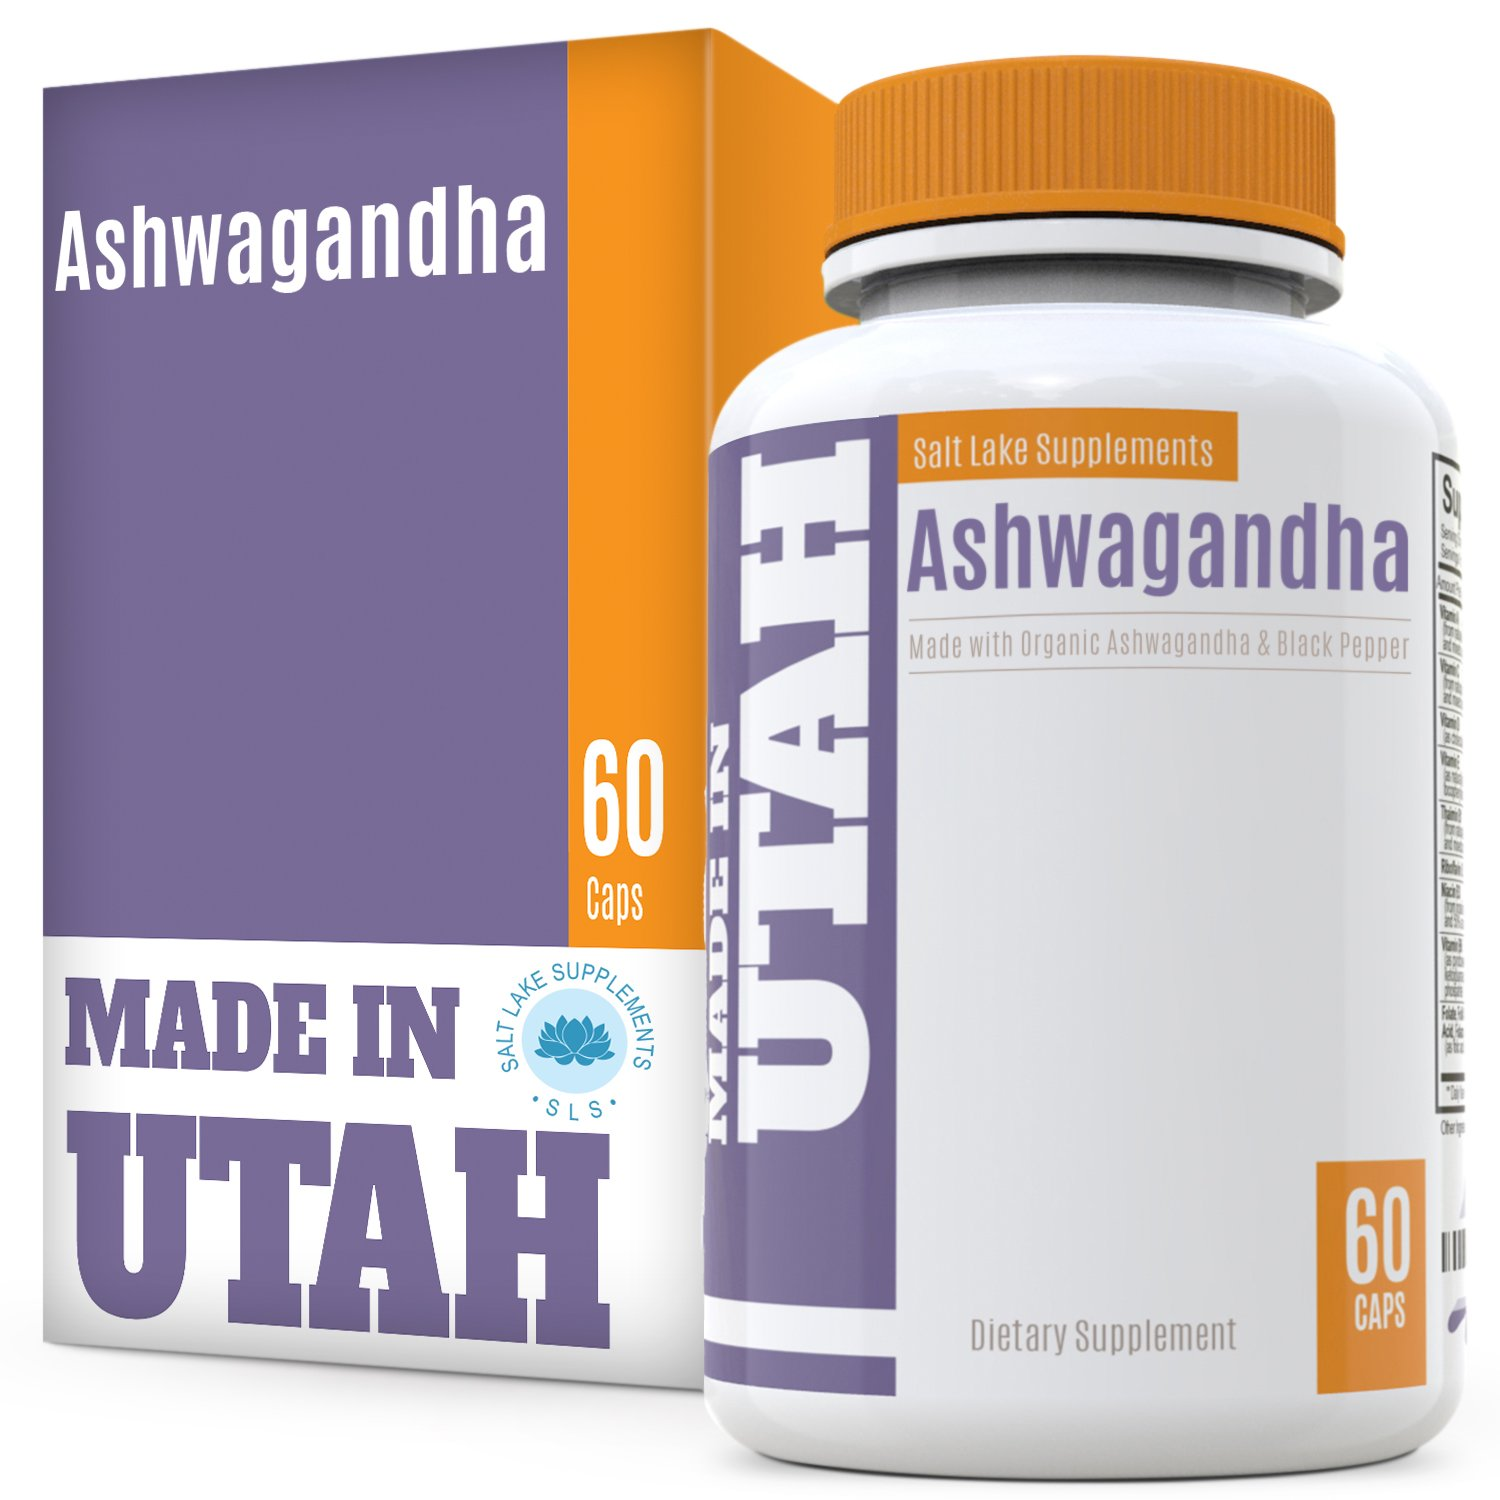 Organic Ashwagandha All Natural Anxiety Relief and Mood Enhancer to Help Combat Stress and Optimize Health, with Organic Black Pepper for Best Absorption and Bioavailability, 60 Capsules